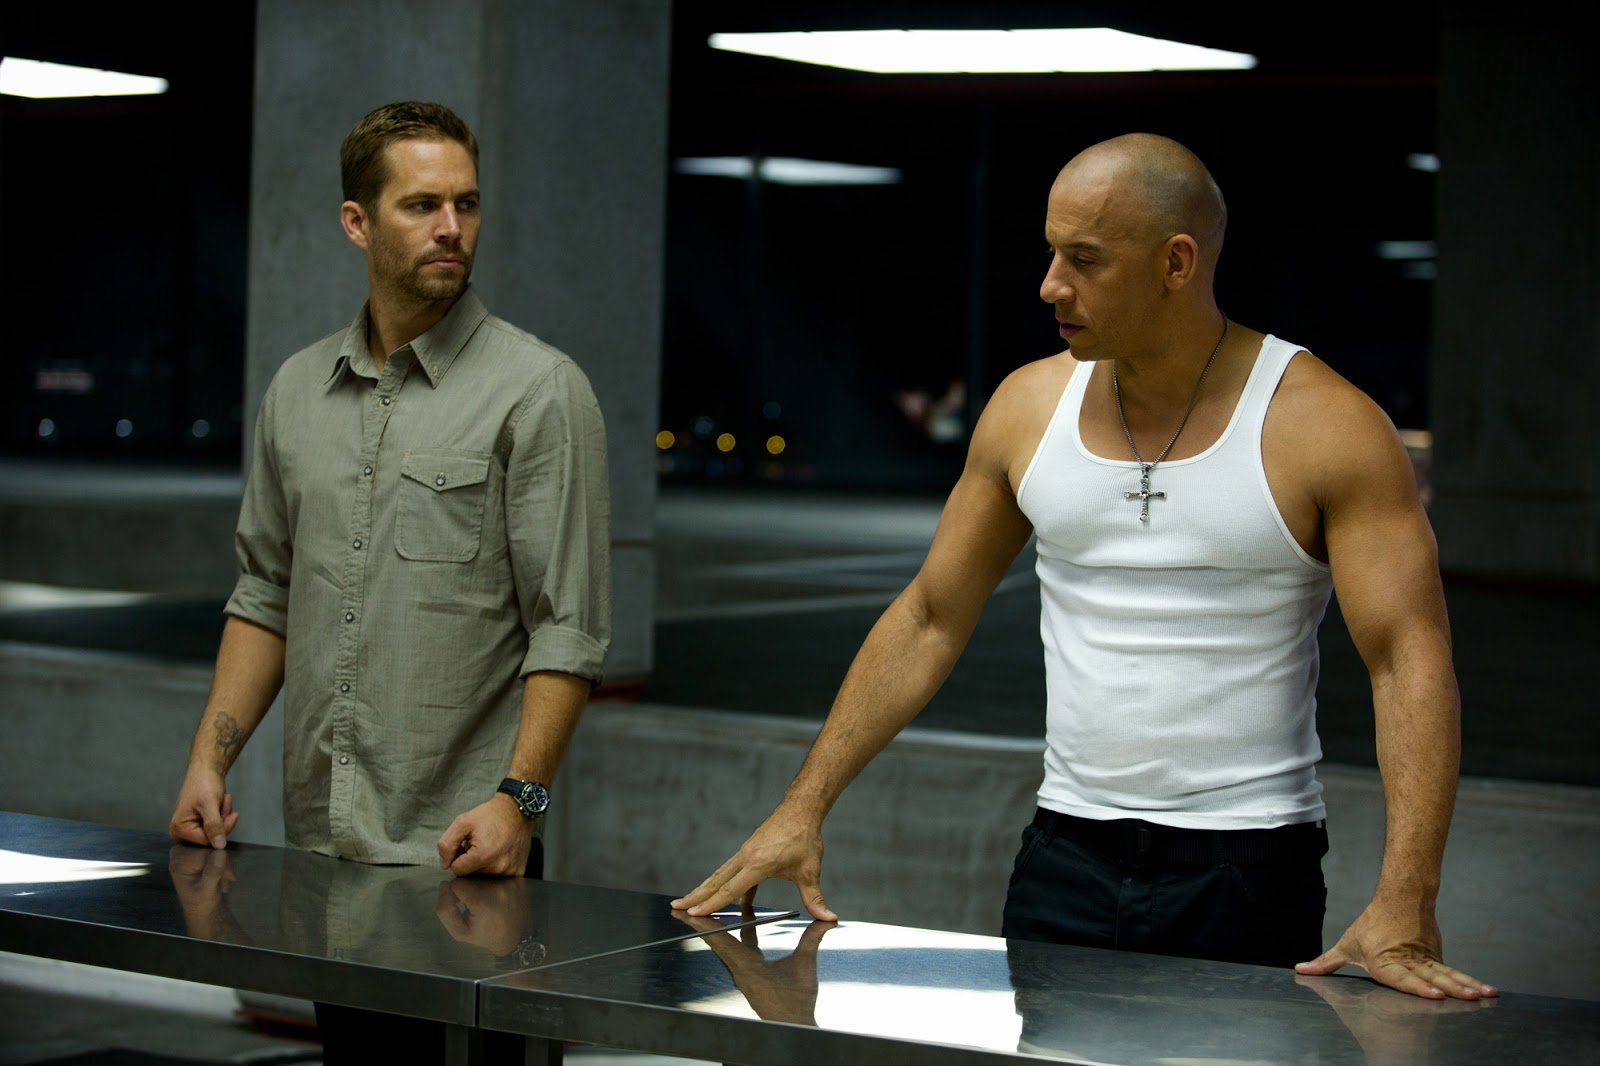 http://3.bp.blogspot.com/-7kh5JL0rUag/UROOeIpienI/AAAAAAAAFAY/LPHYjiHf4o4/s1600/Fast-and-Furious-6-Vin-Diesel-and-Paul-Walker.jpg